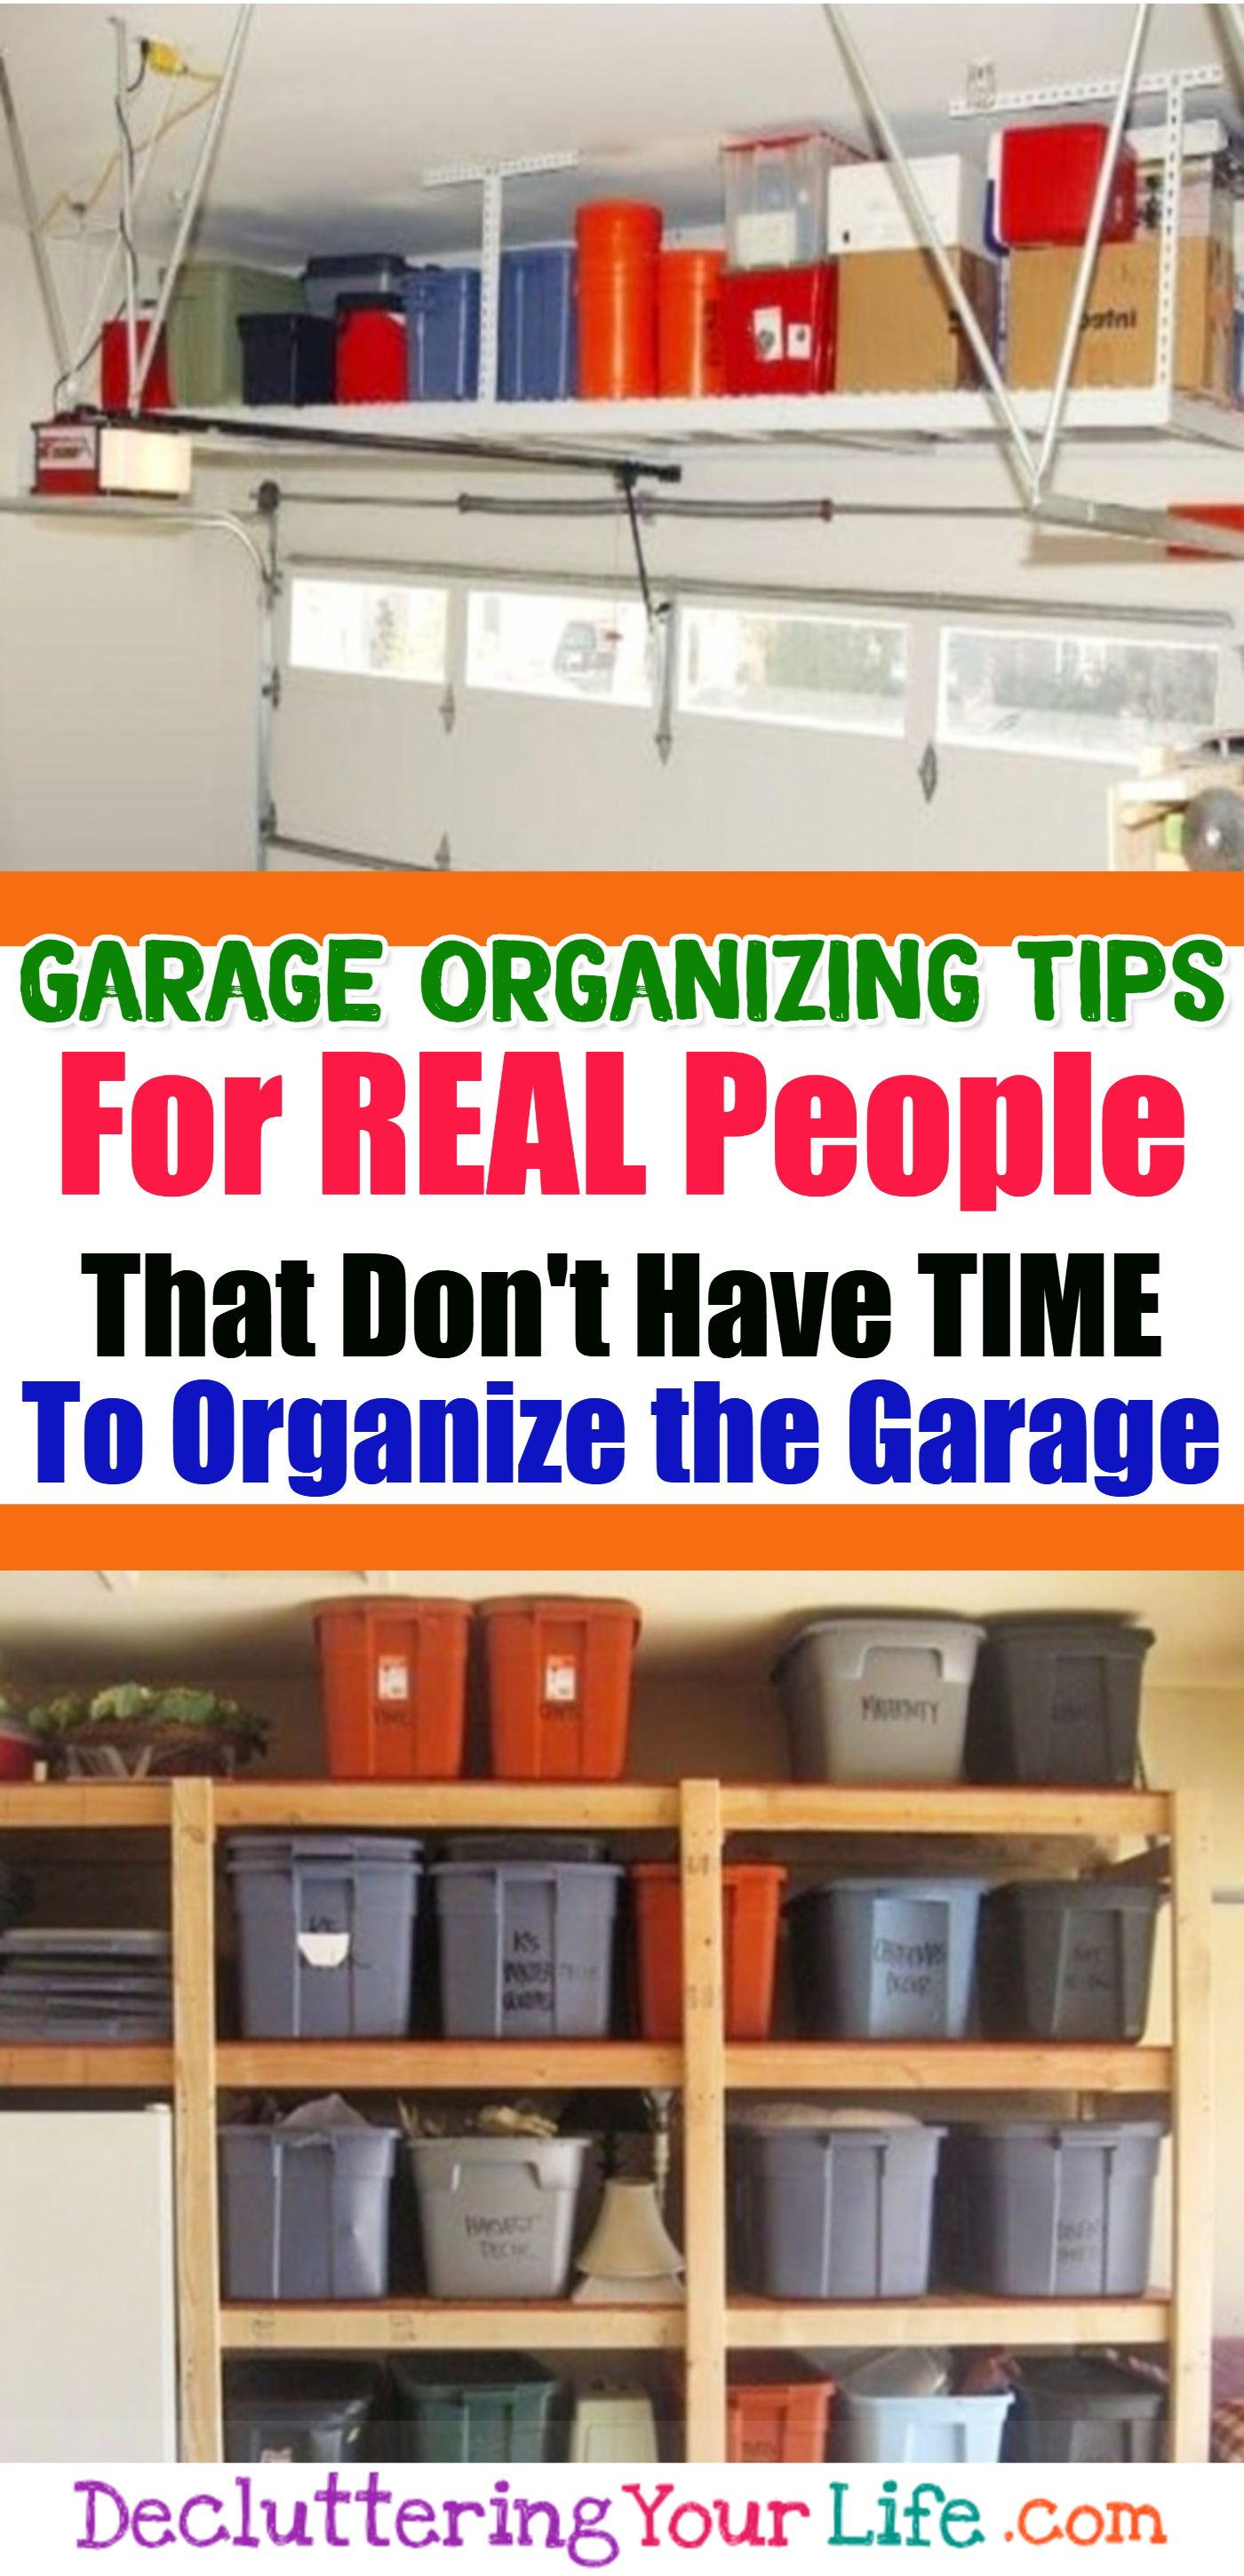 garge final womans organization cleaning storage home mag sf day your ideas garage for solutions organizing and tips